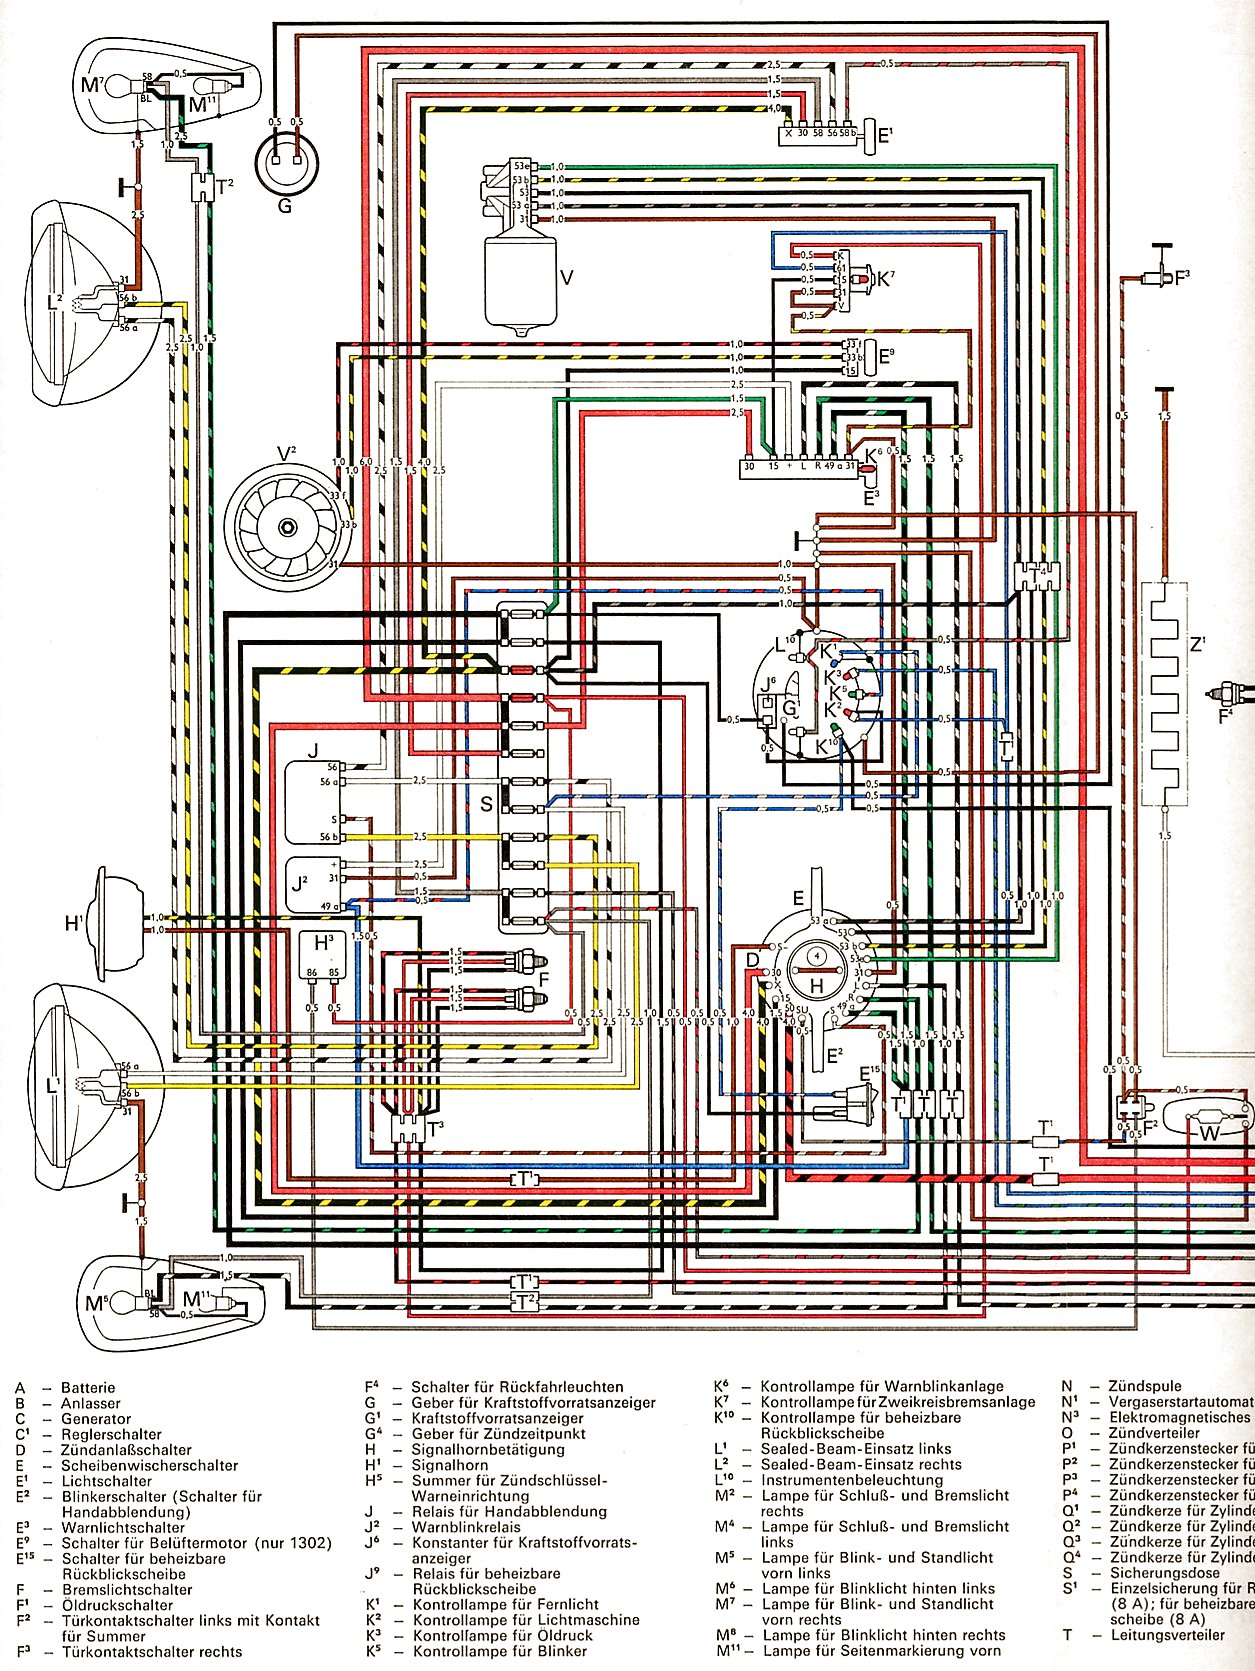 1300_and_1302_USA_from_August_1971 1 wiring help 1974 vw beetle shoptalkforums com 1974 vw beetle wiring diagram at virtualis.co